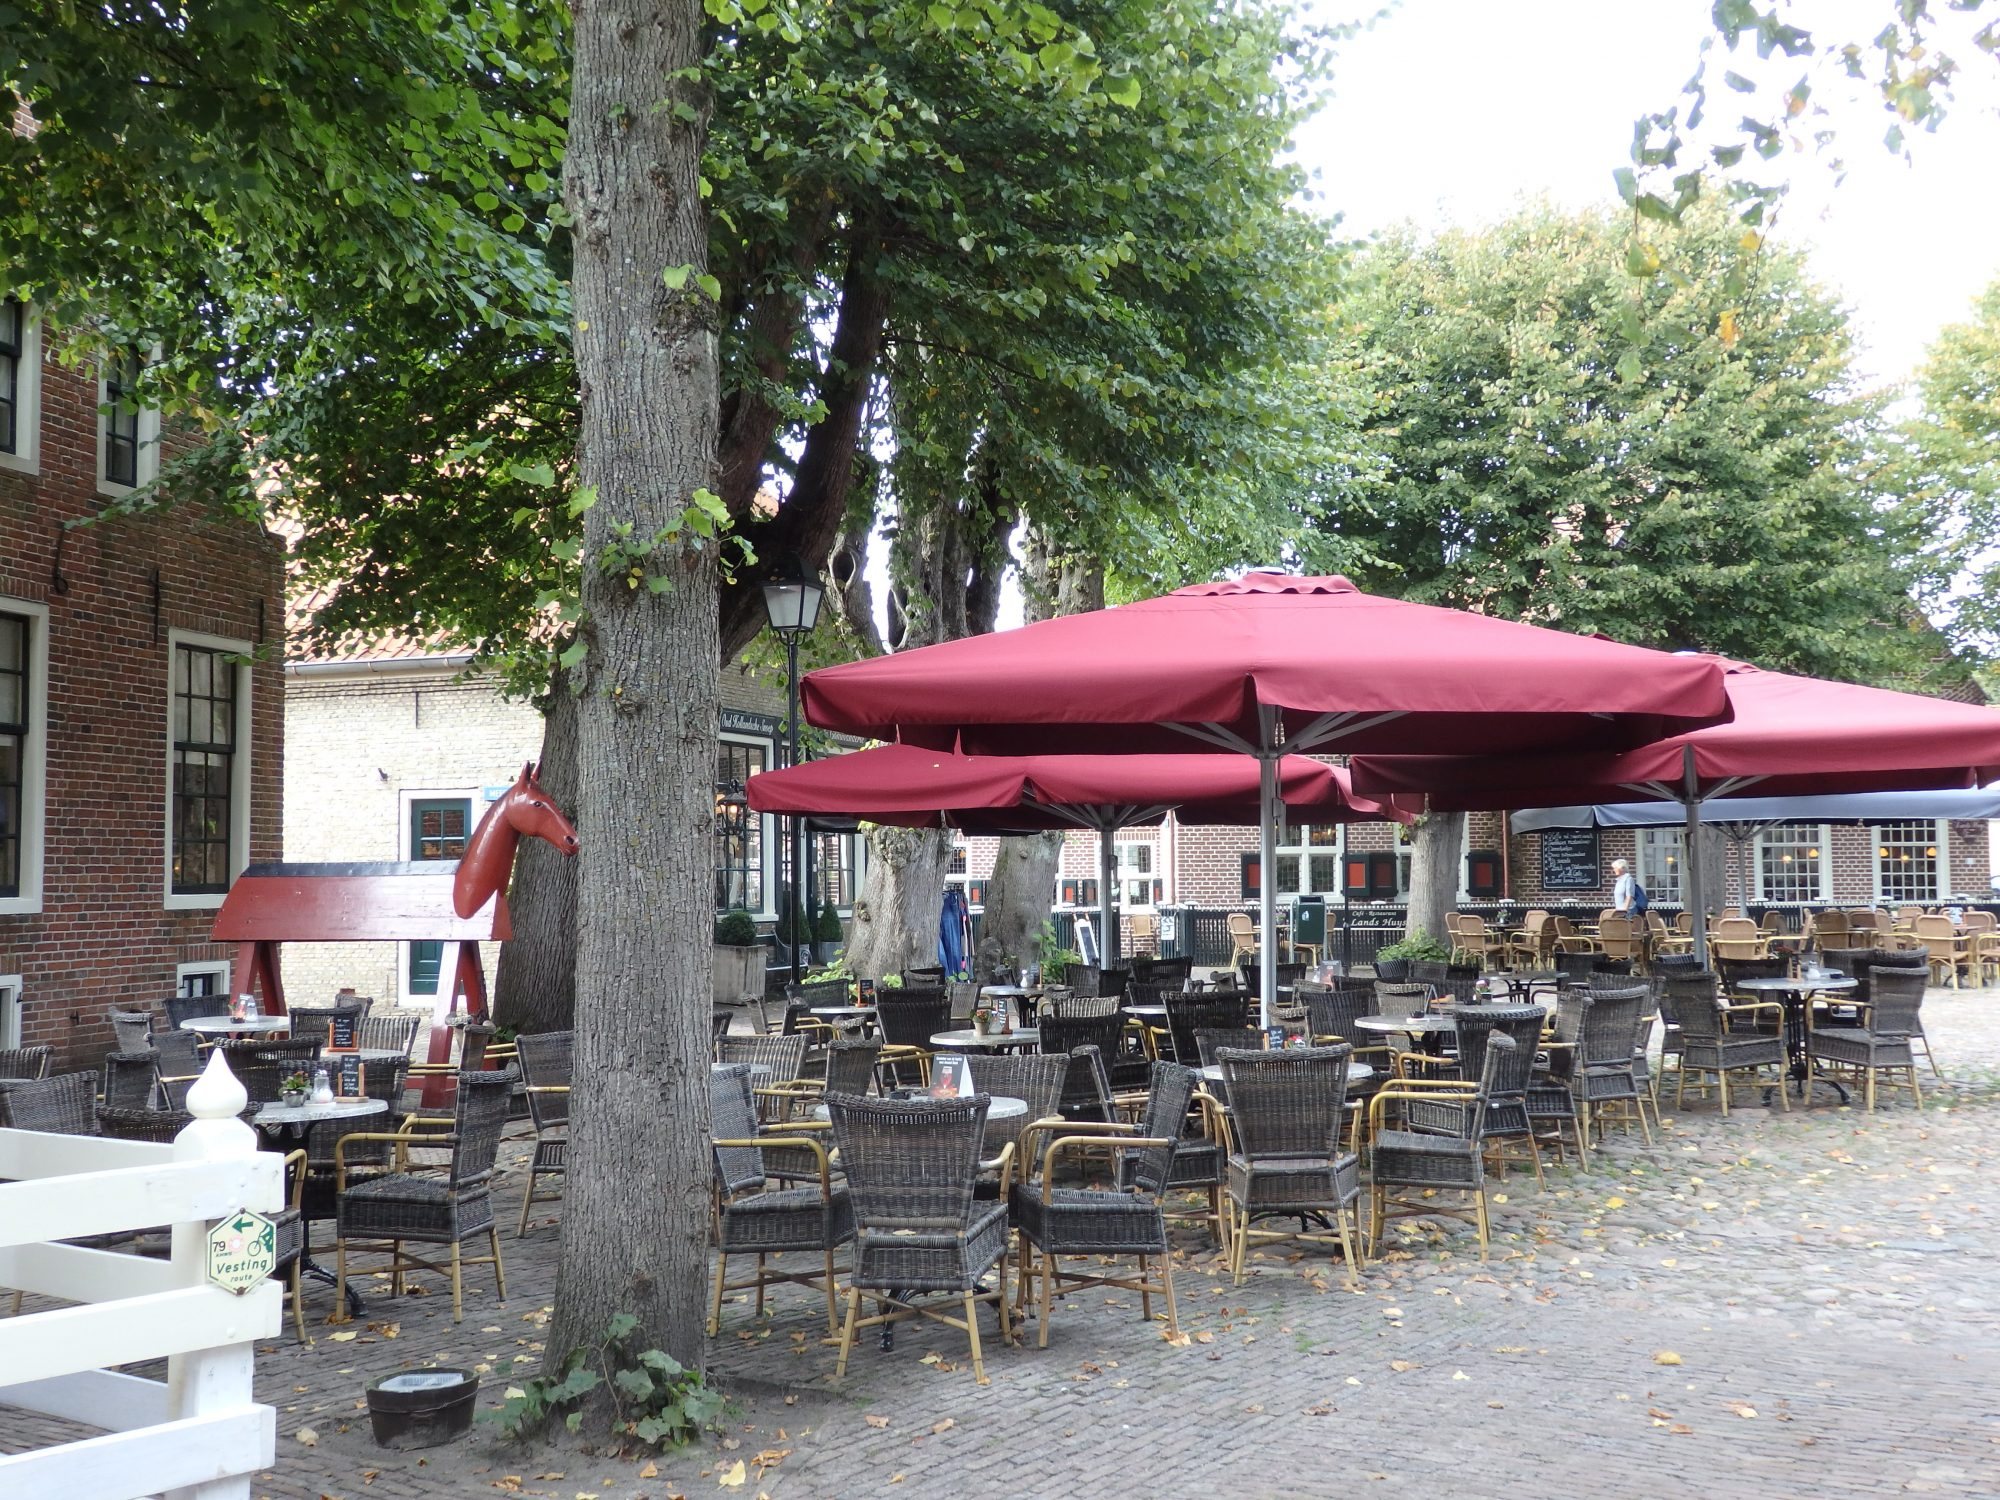 a cafe-restaurant in the central plaza of Bourtange